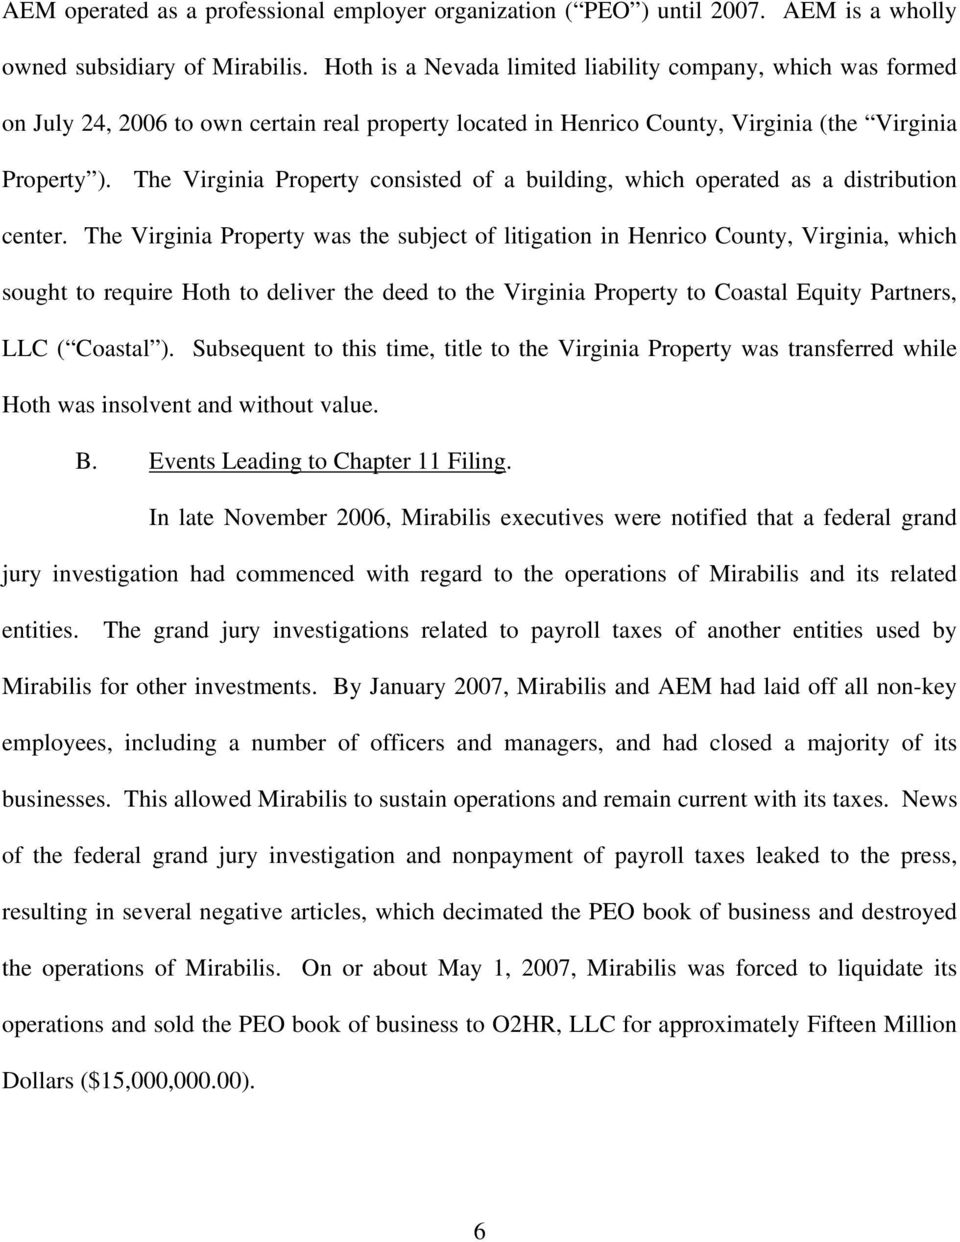 The Virginia Property consisted of a building, which operated as a distribution center.